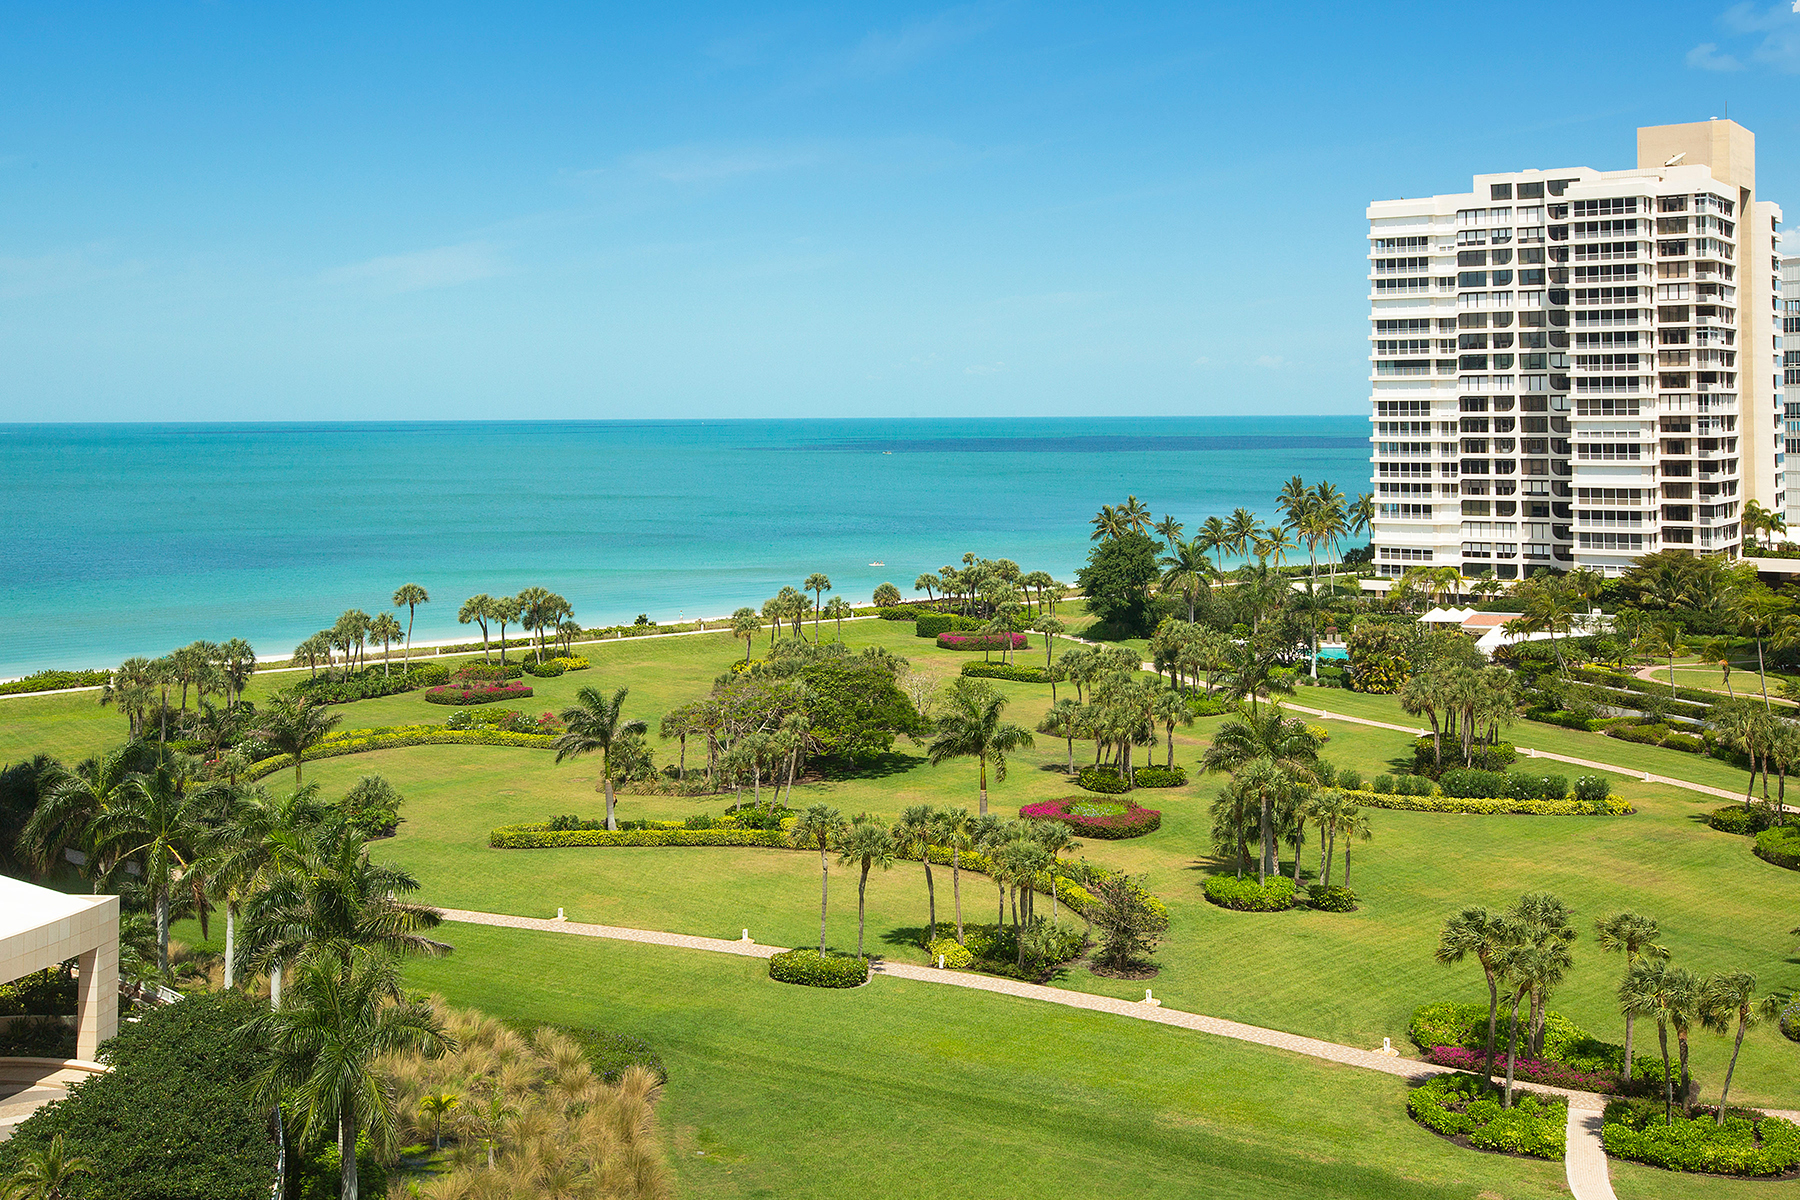 Condominium for Sale at Park Shore - Provence 4151 Gulf Shore Blvd N 1003, Naples, Florida 34103 United States